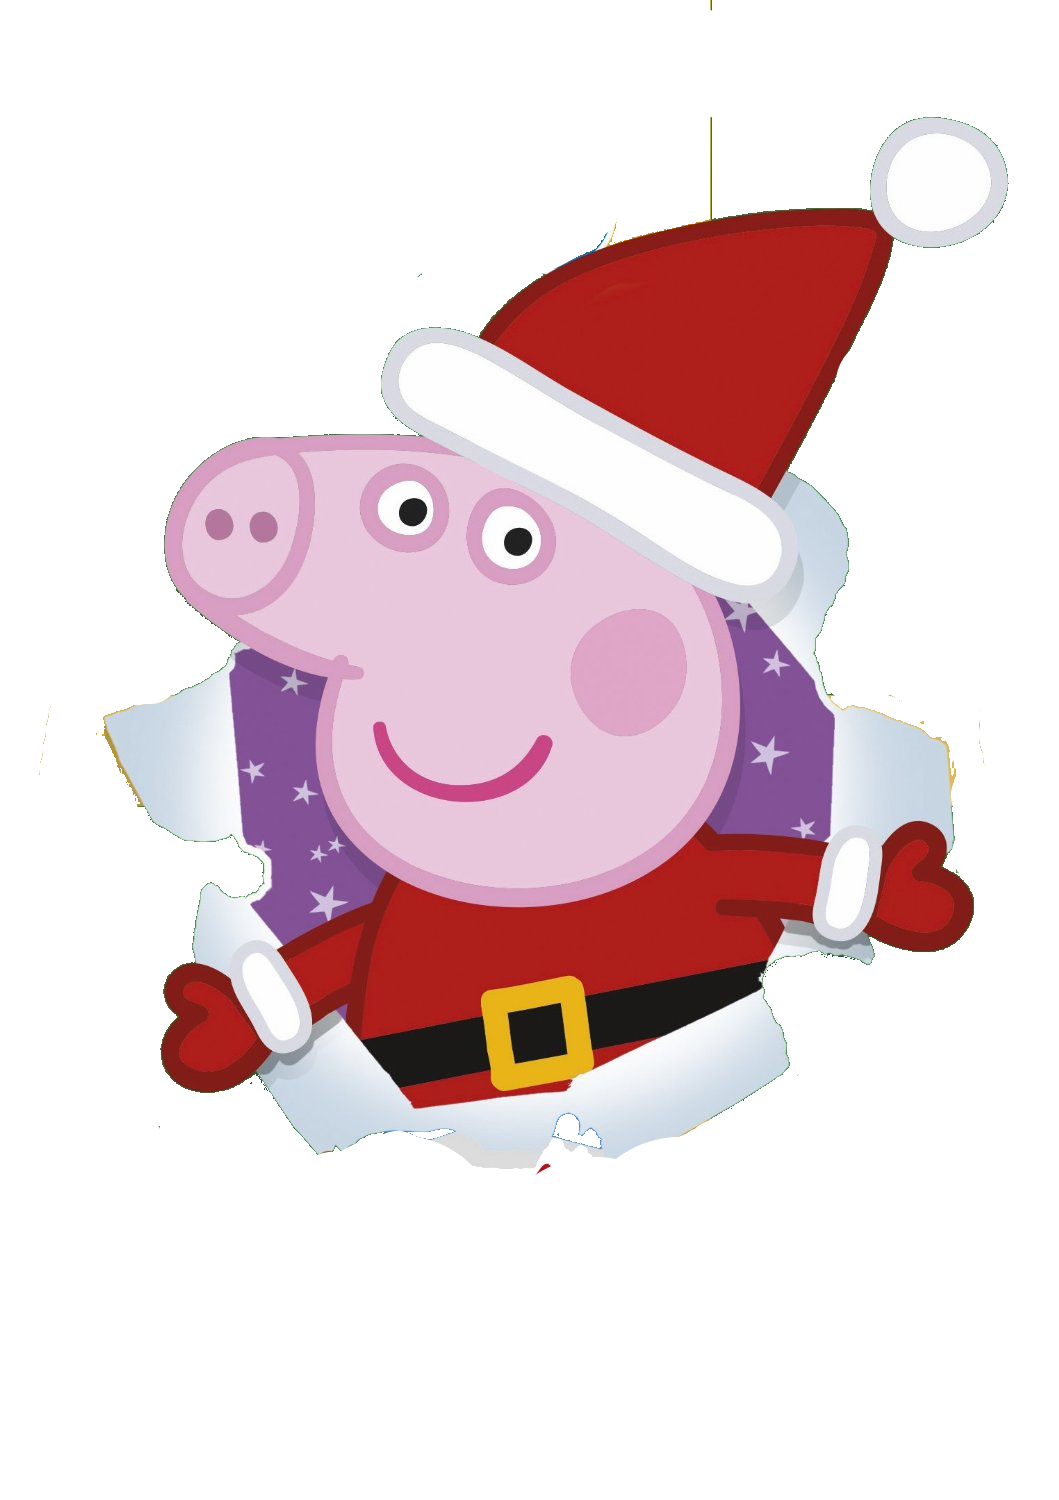 Image Merry Christmas Birches Png Peppa Pig Fanon Wiki